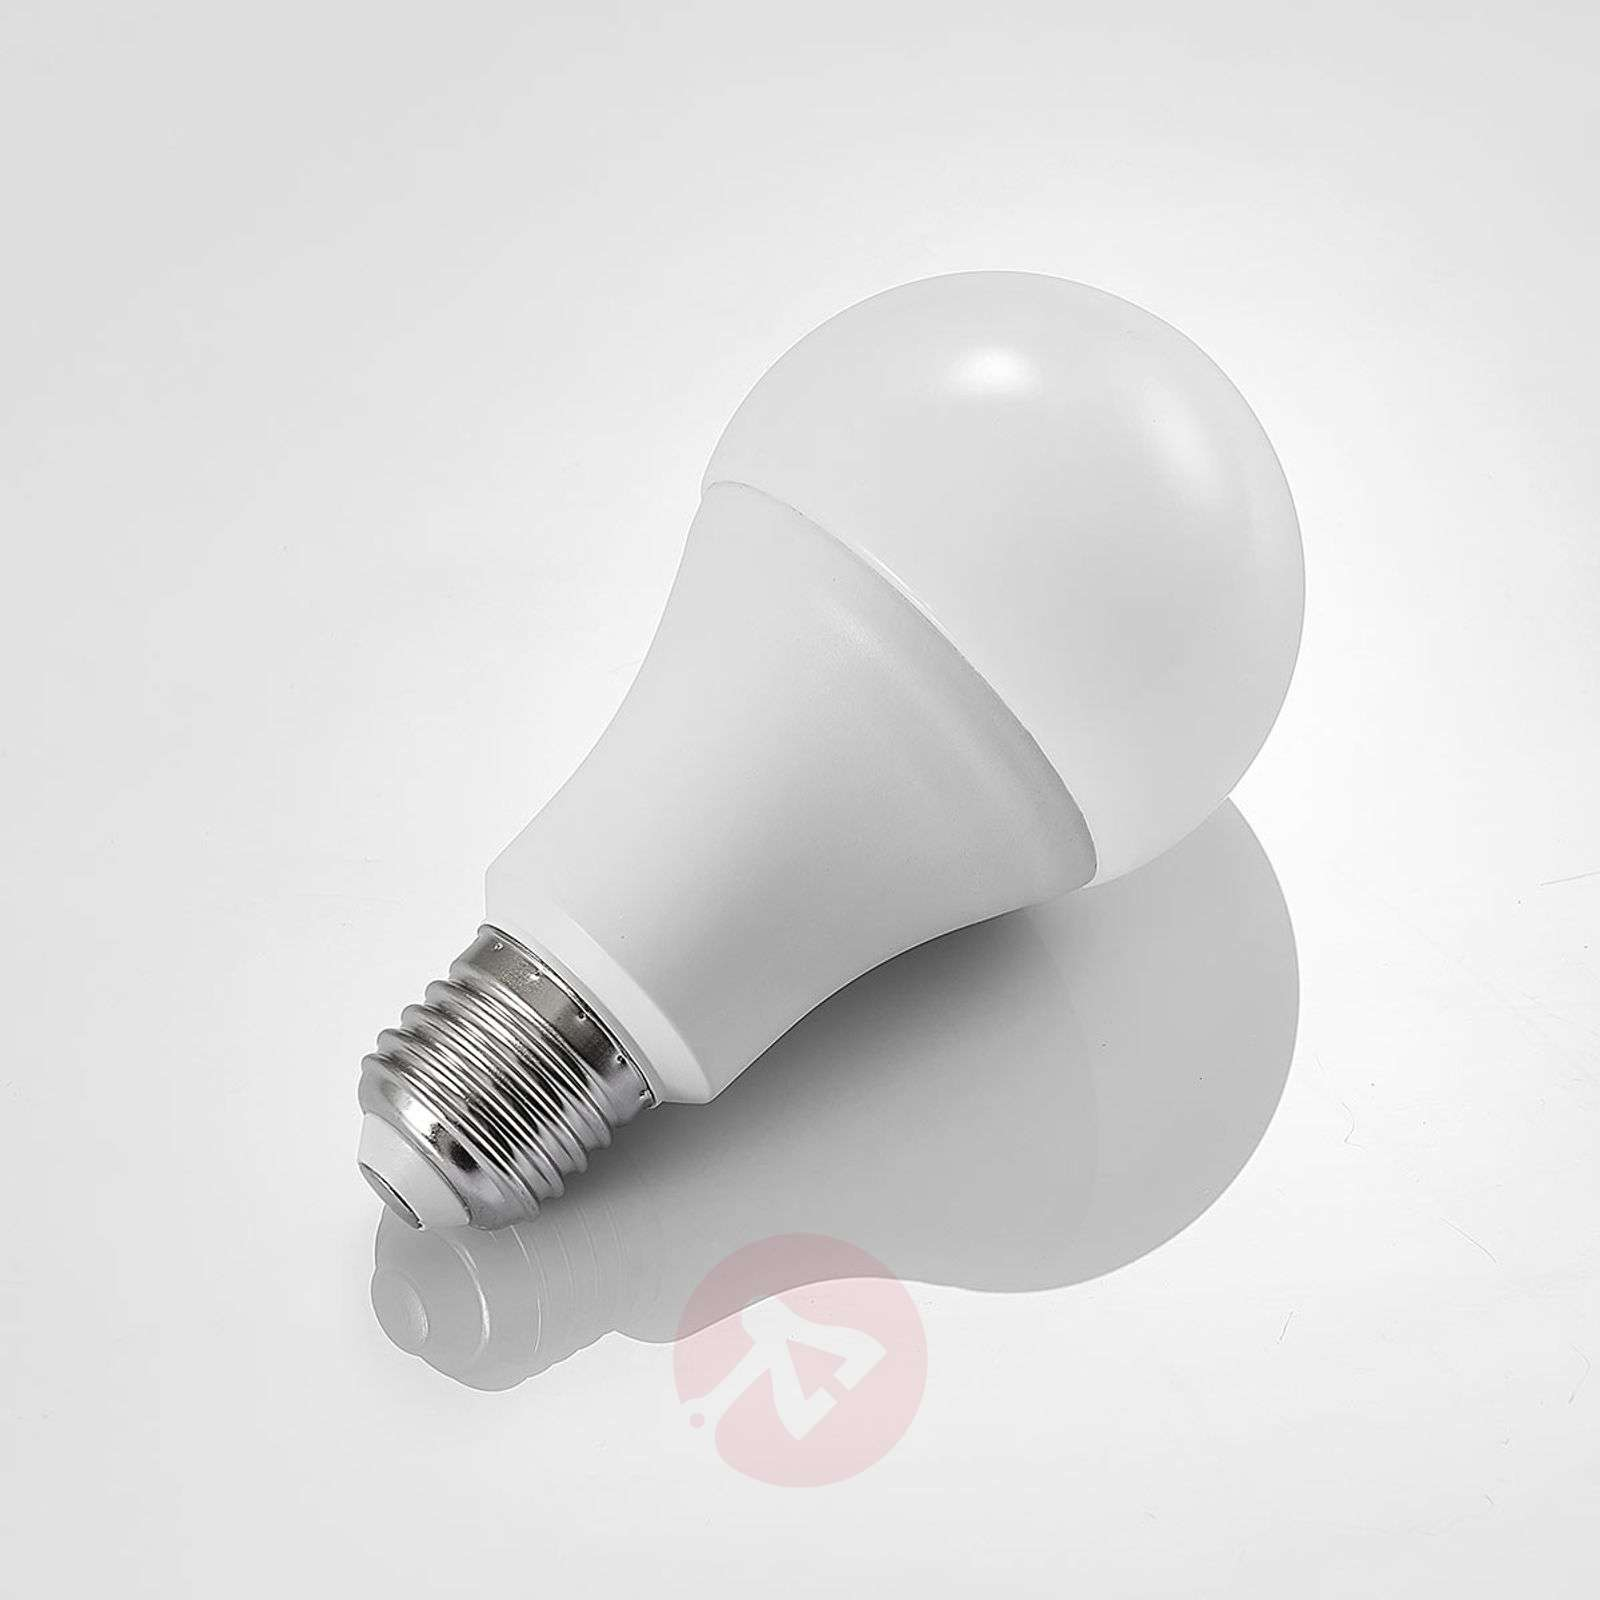 Ampoule LED WiFi E27 10 W, 2700 K, RVB, dimmable-9971013-09